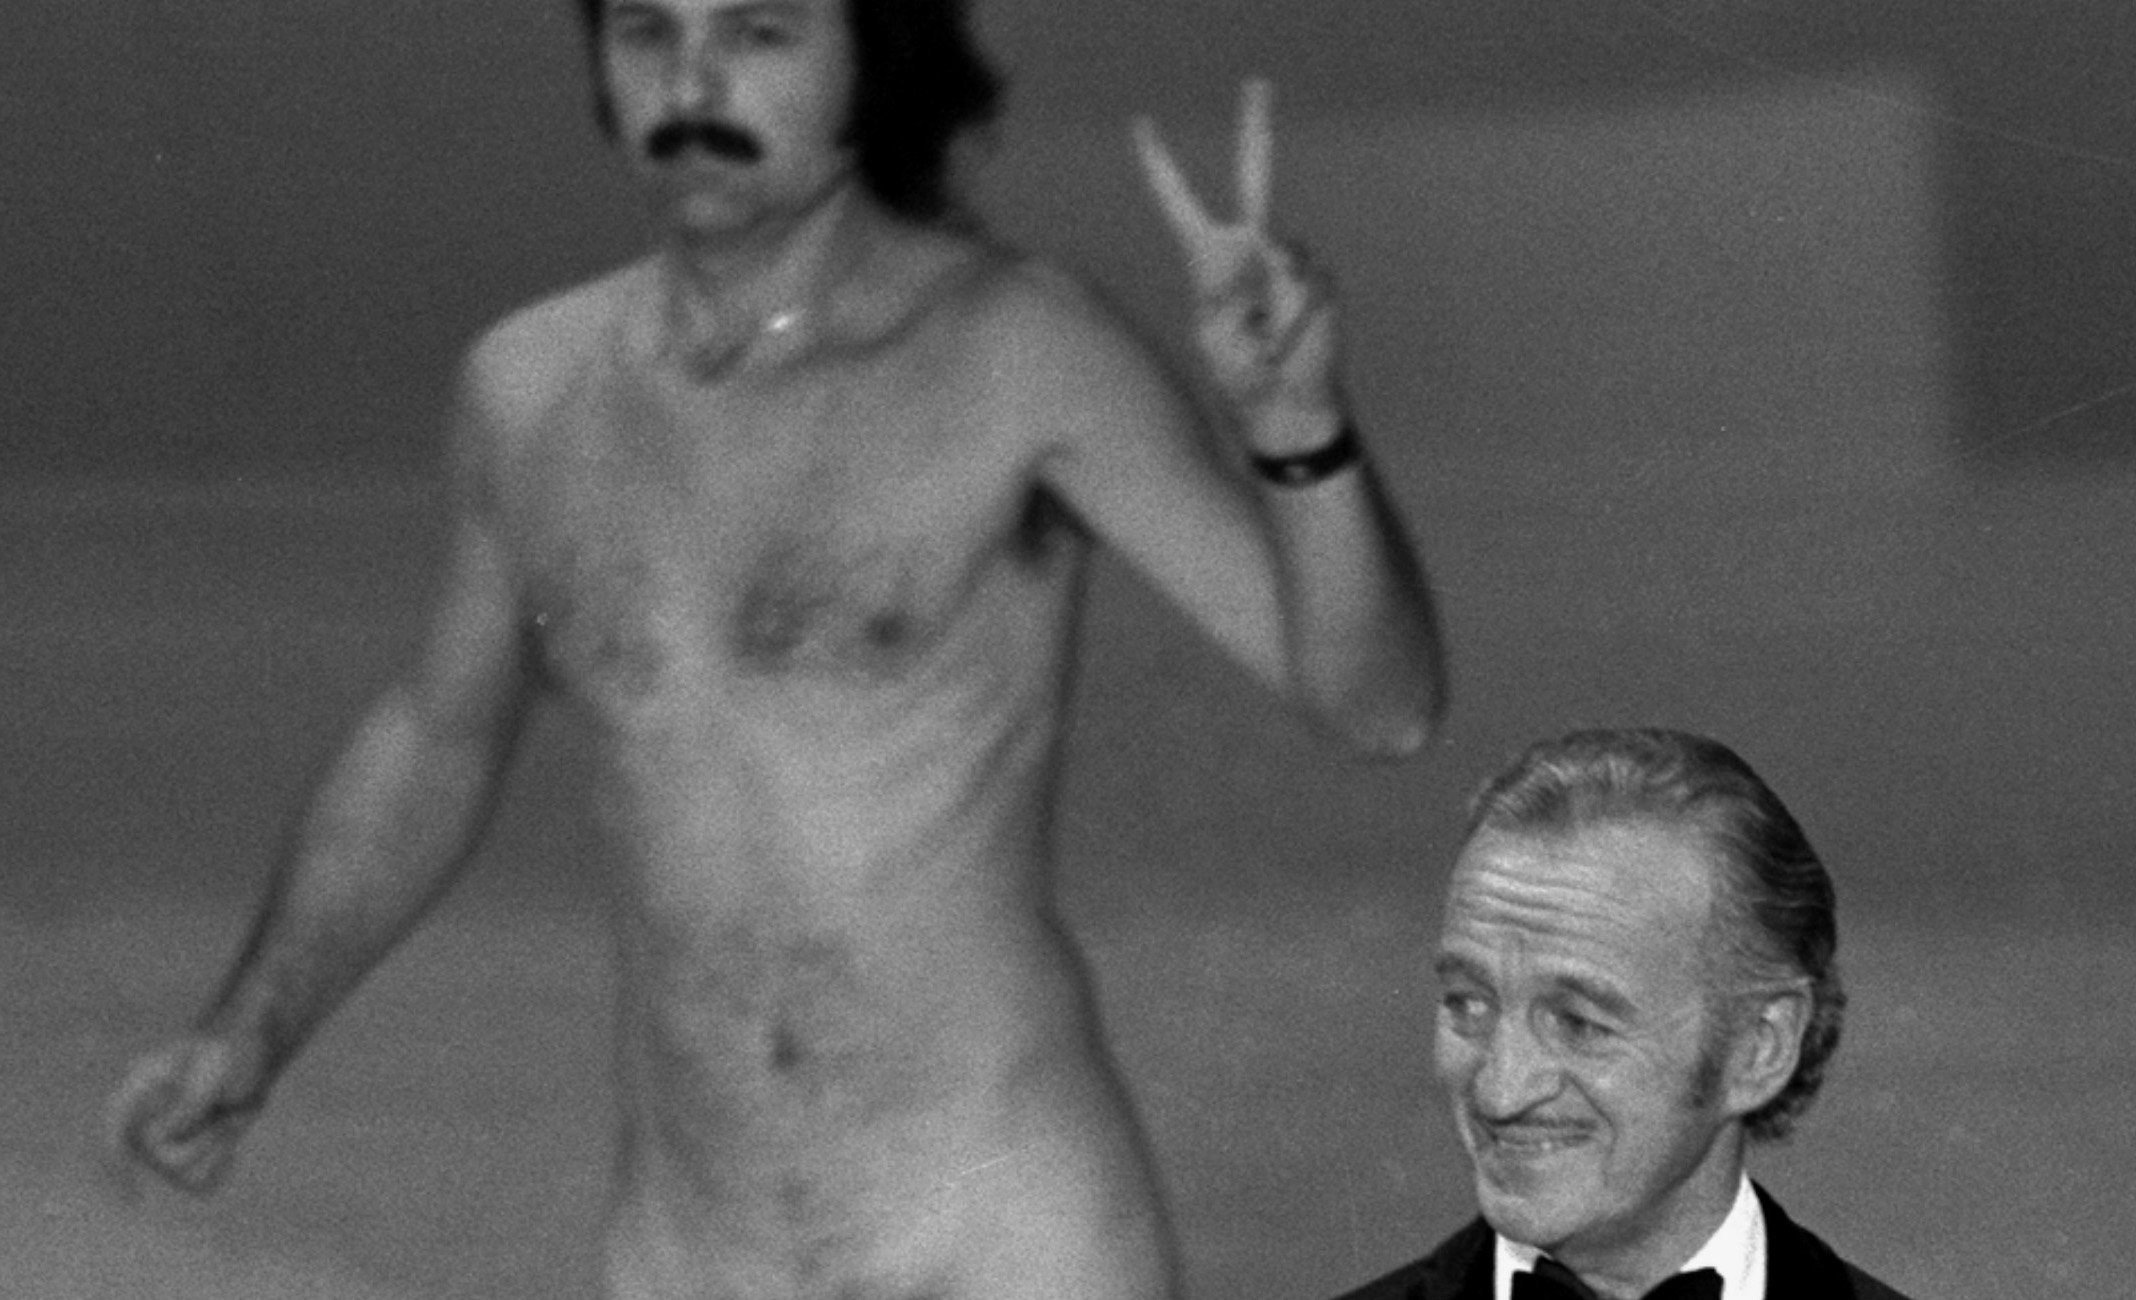 Mandatory Credit: Photo by Anonymous/AP/Shutterstock (6594477a) Actor David Niven presents an award as streaker Robert Ope crosses the stage during the 1974 Academy Awards show in Los Angeles Film Five Most, LOS ANGELES, USA